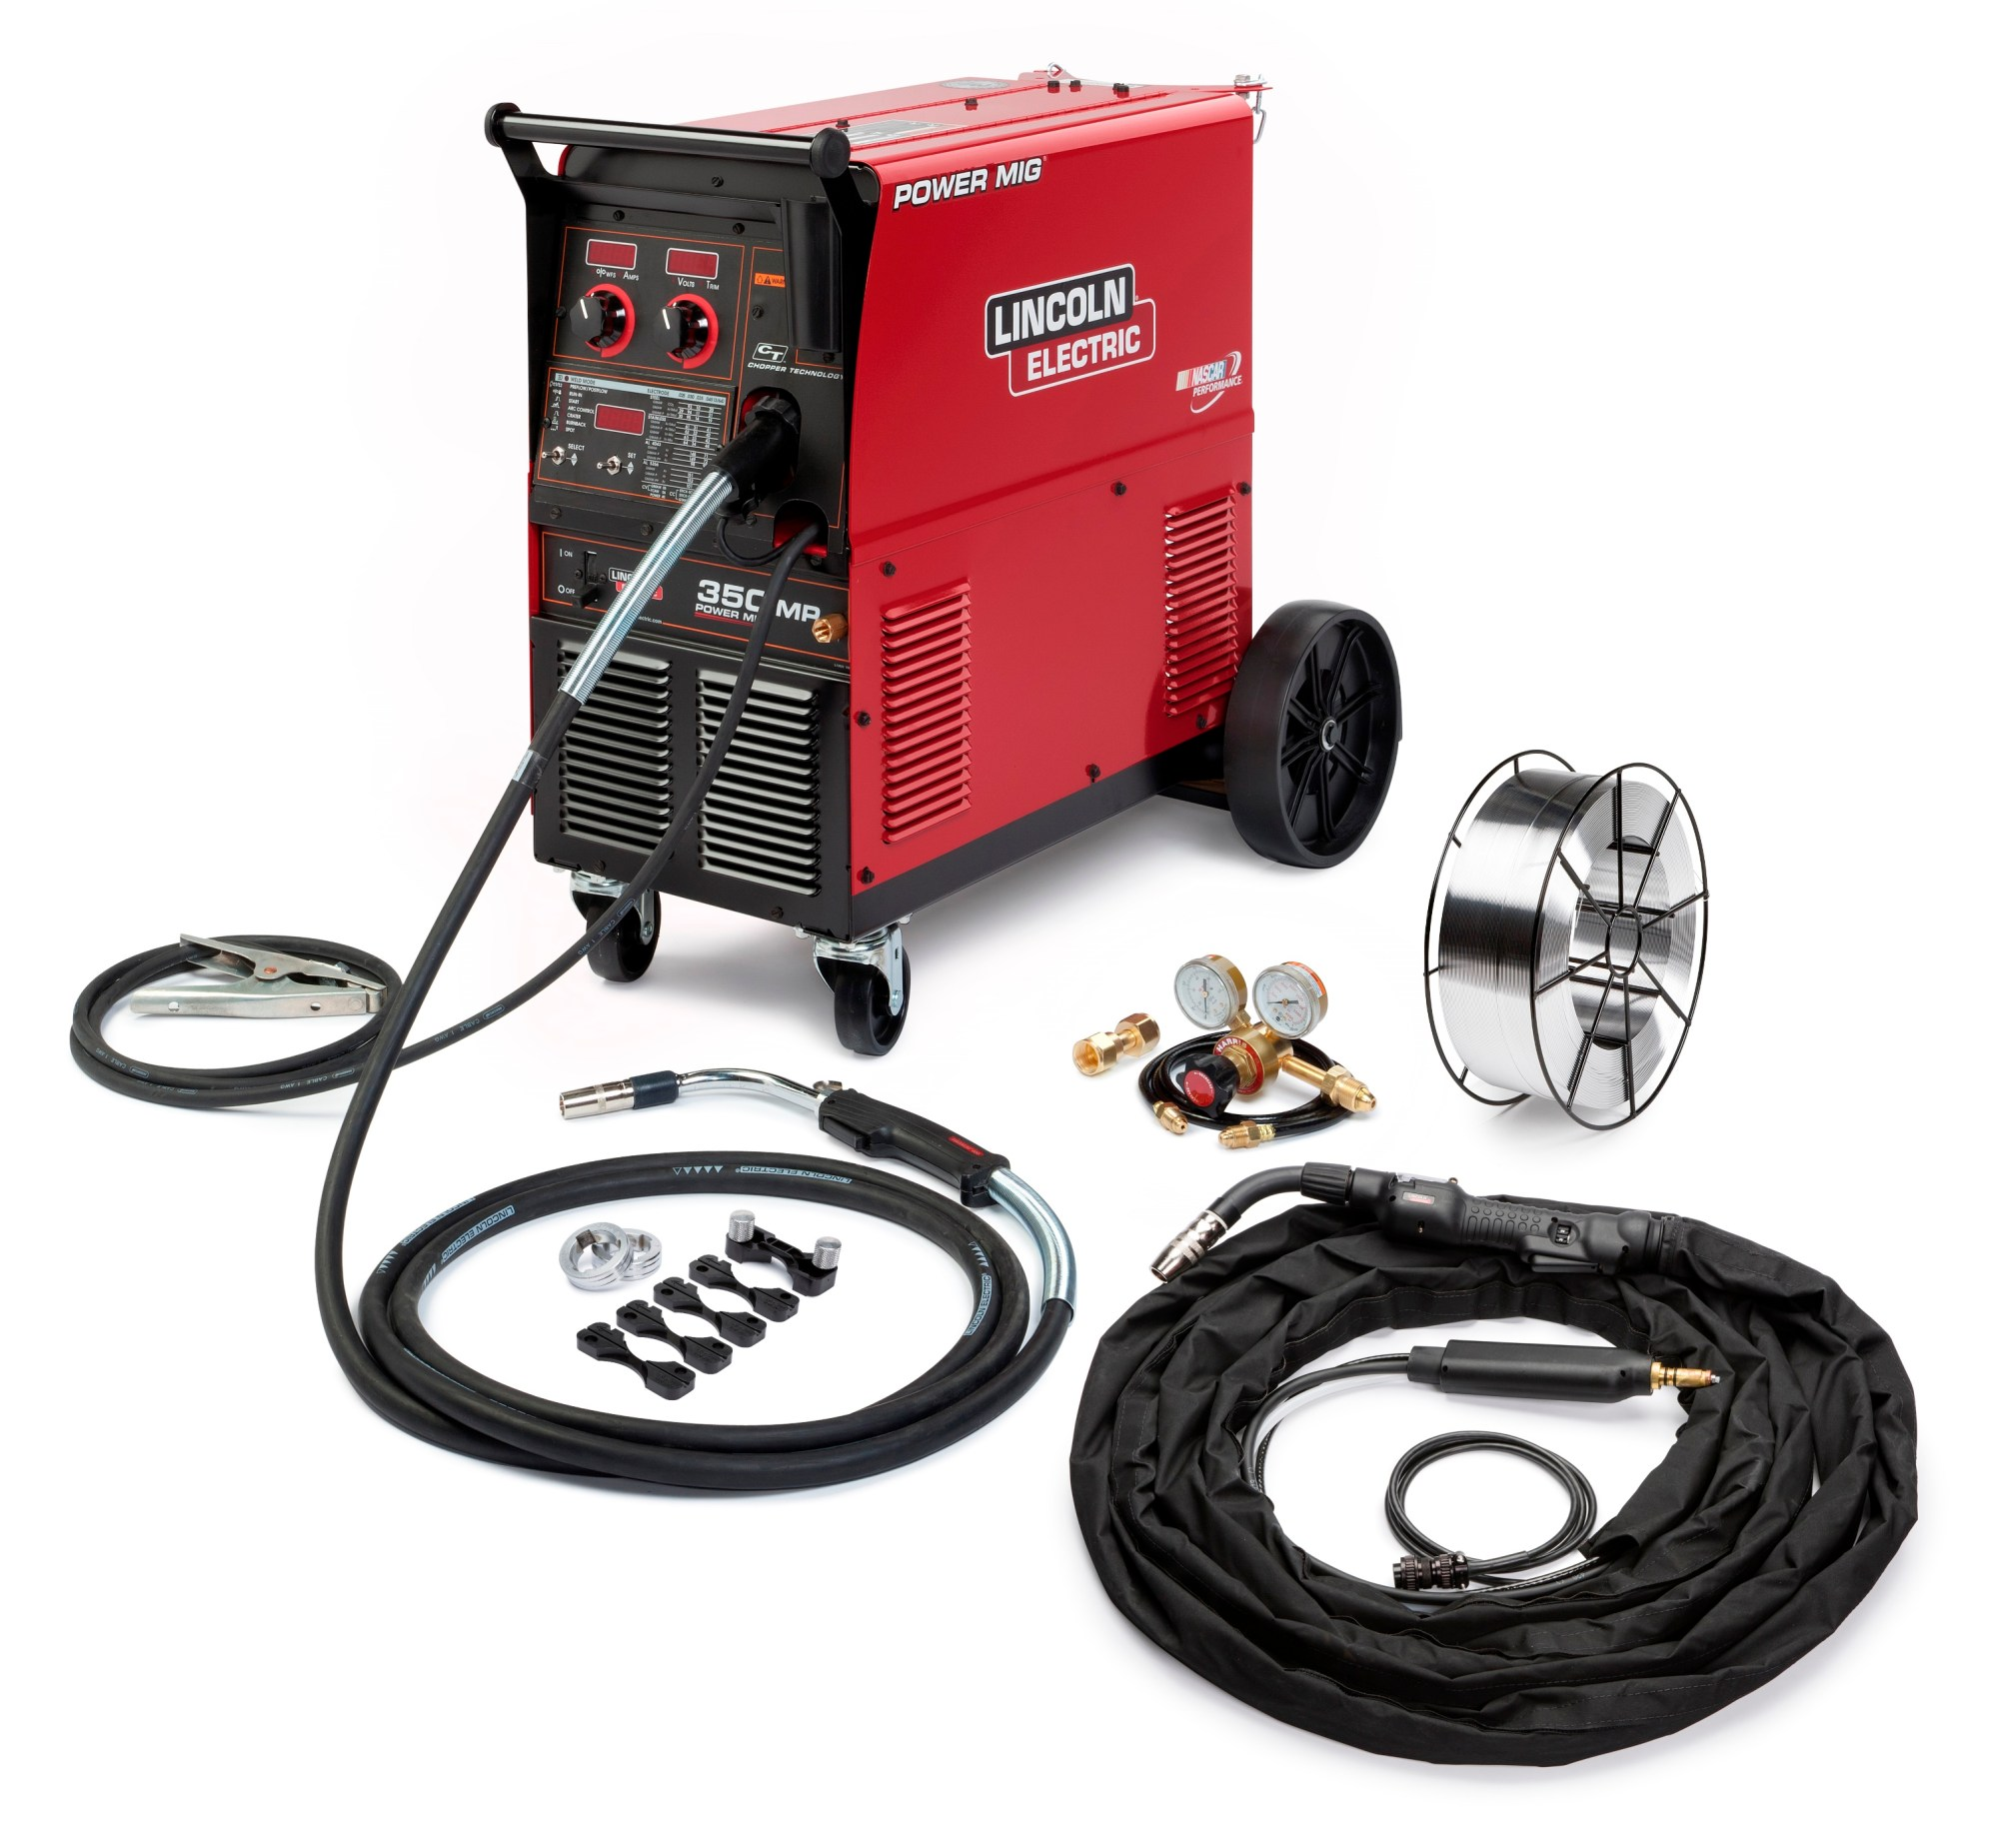 hight resolution of fabricating metalworking electric newsroom lincoln electric expands power migr wire welder